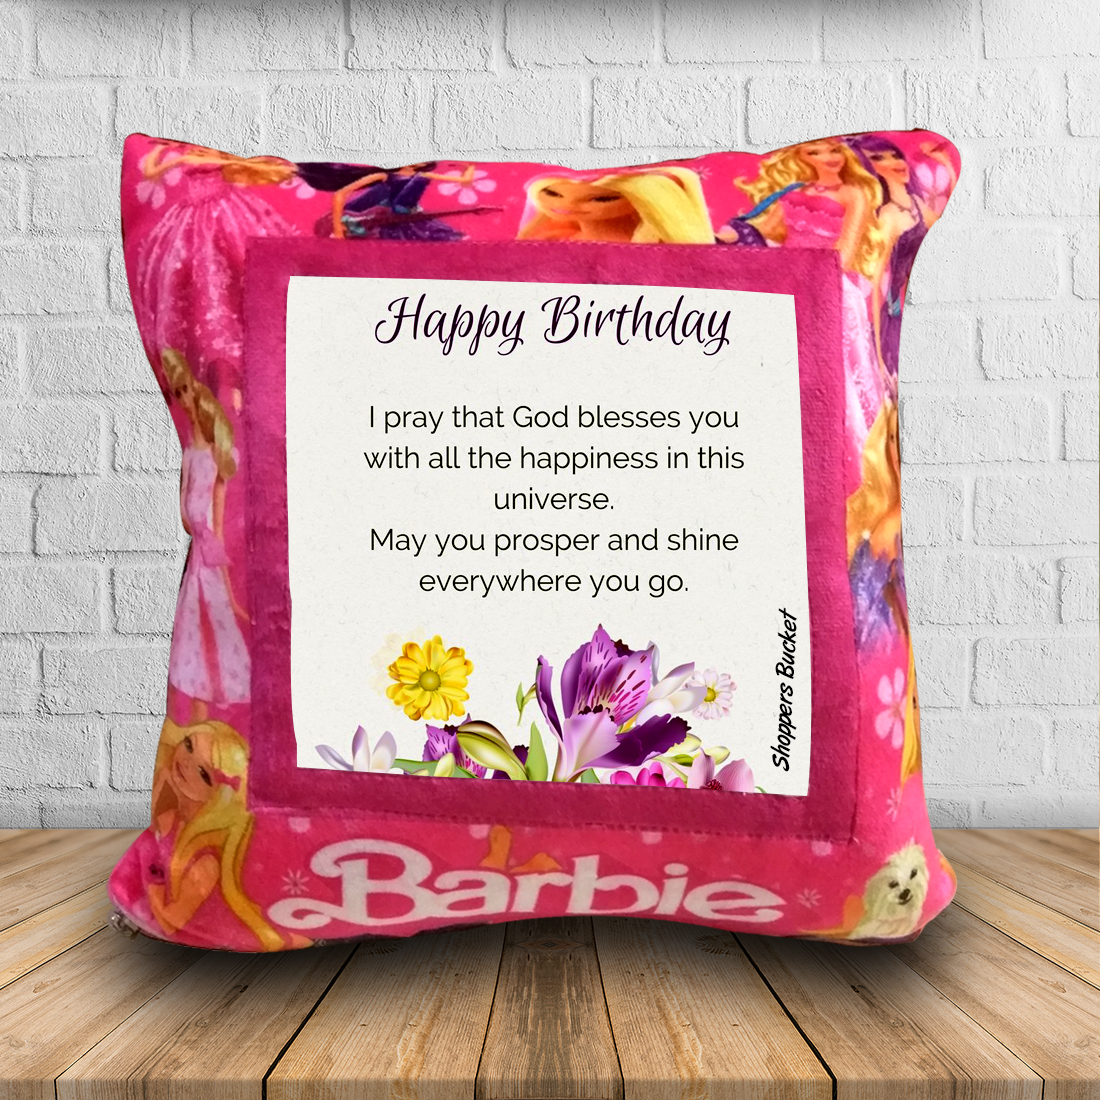 Customized pillows as birthday gift for her